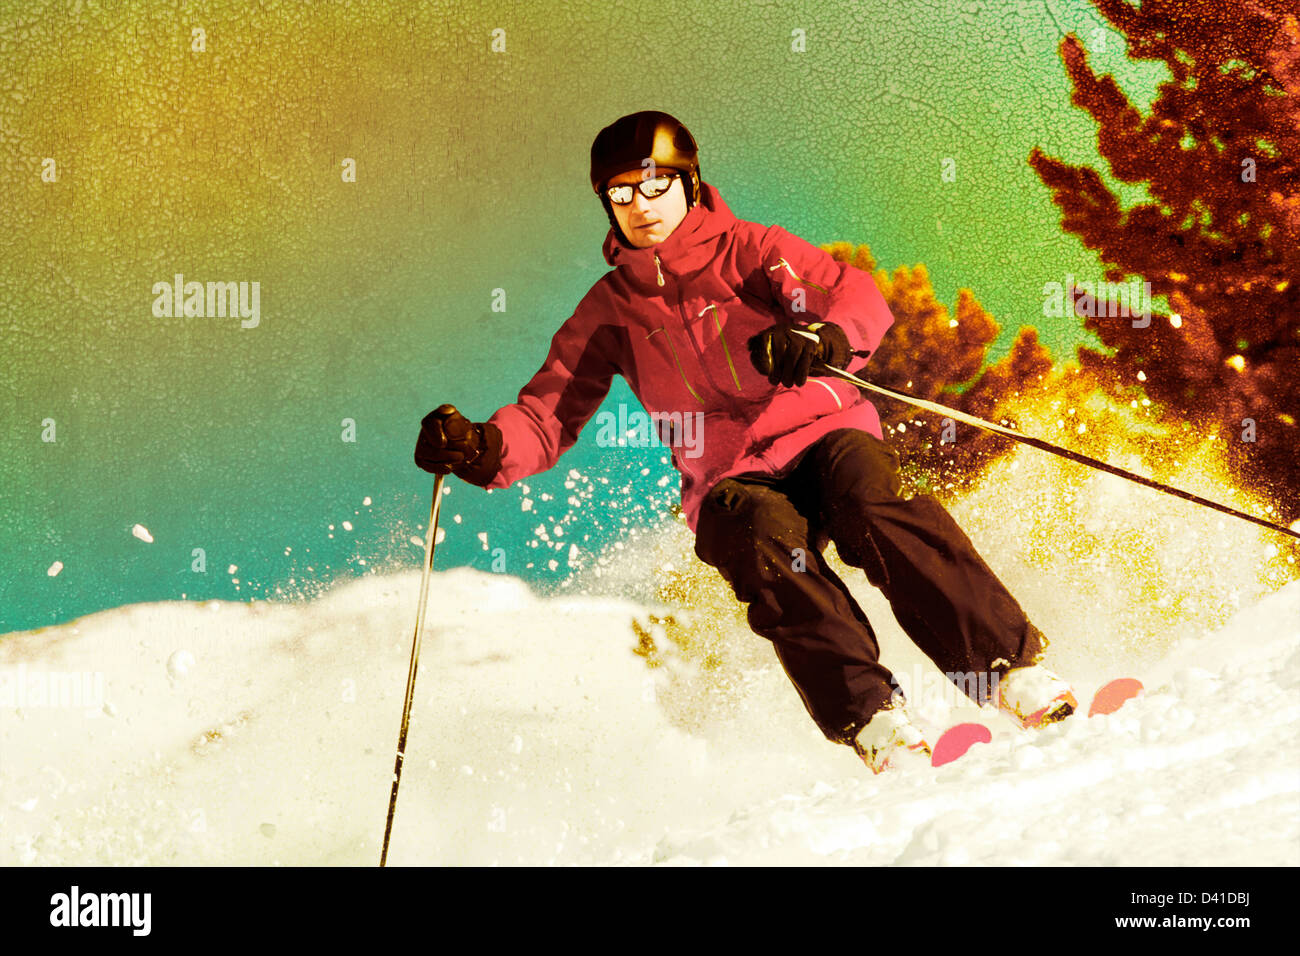 Back country skier with retro photo effect - Stock Image